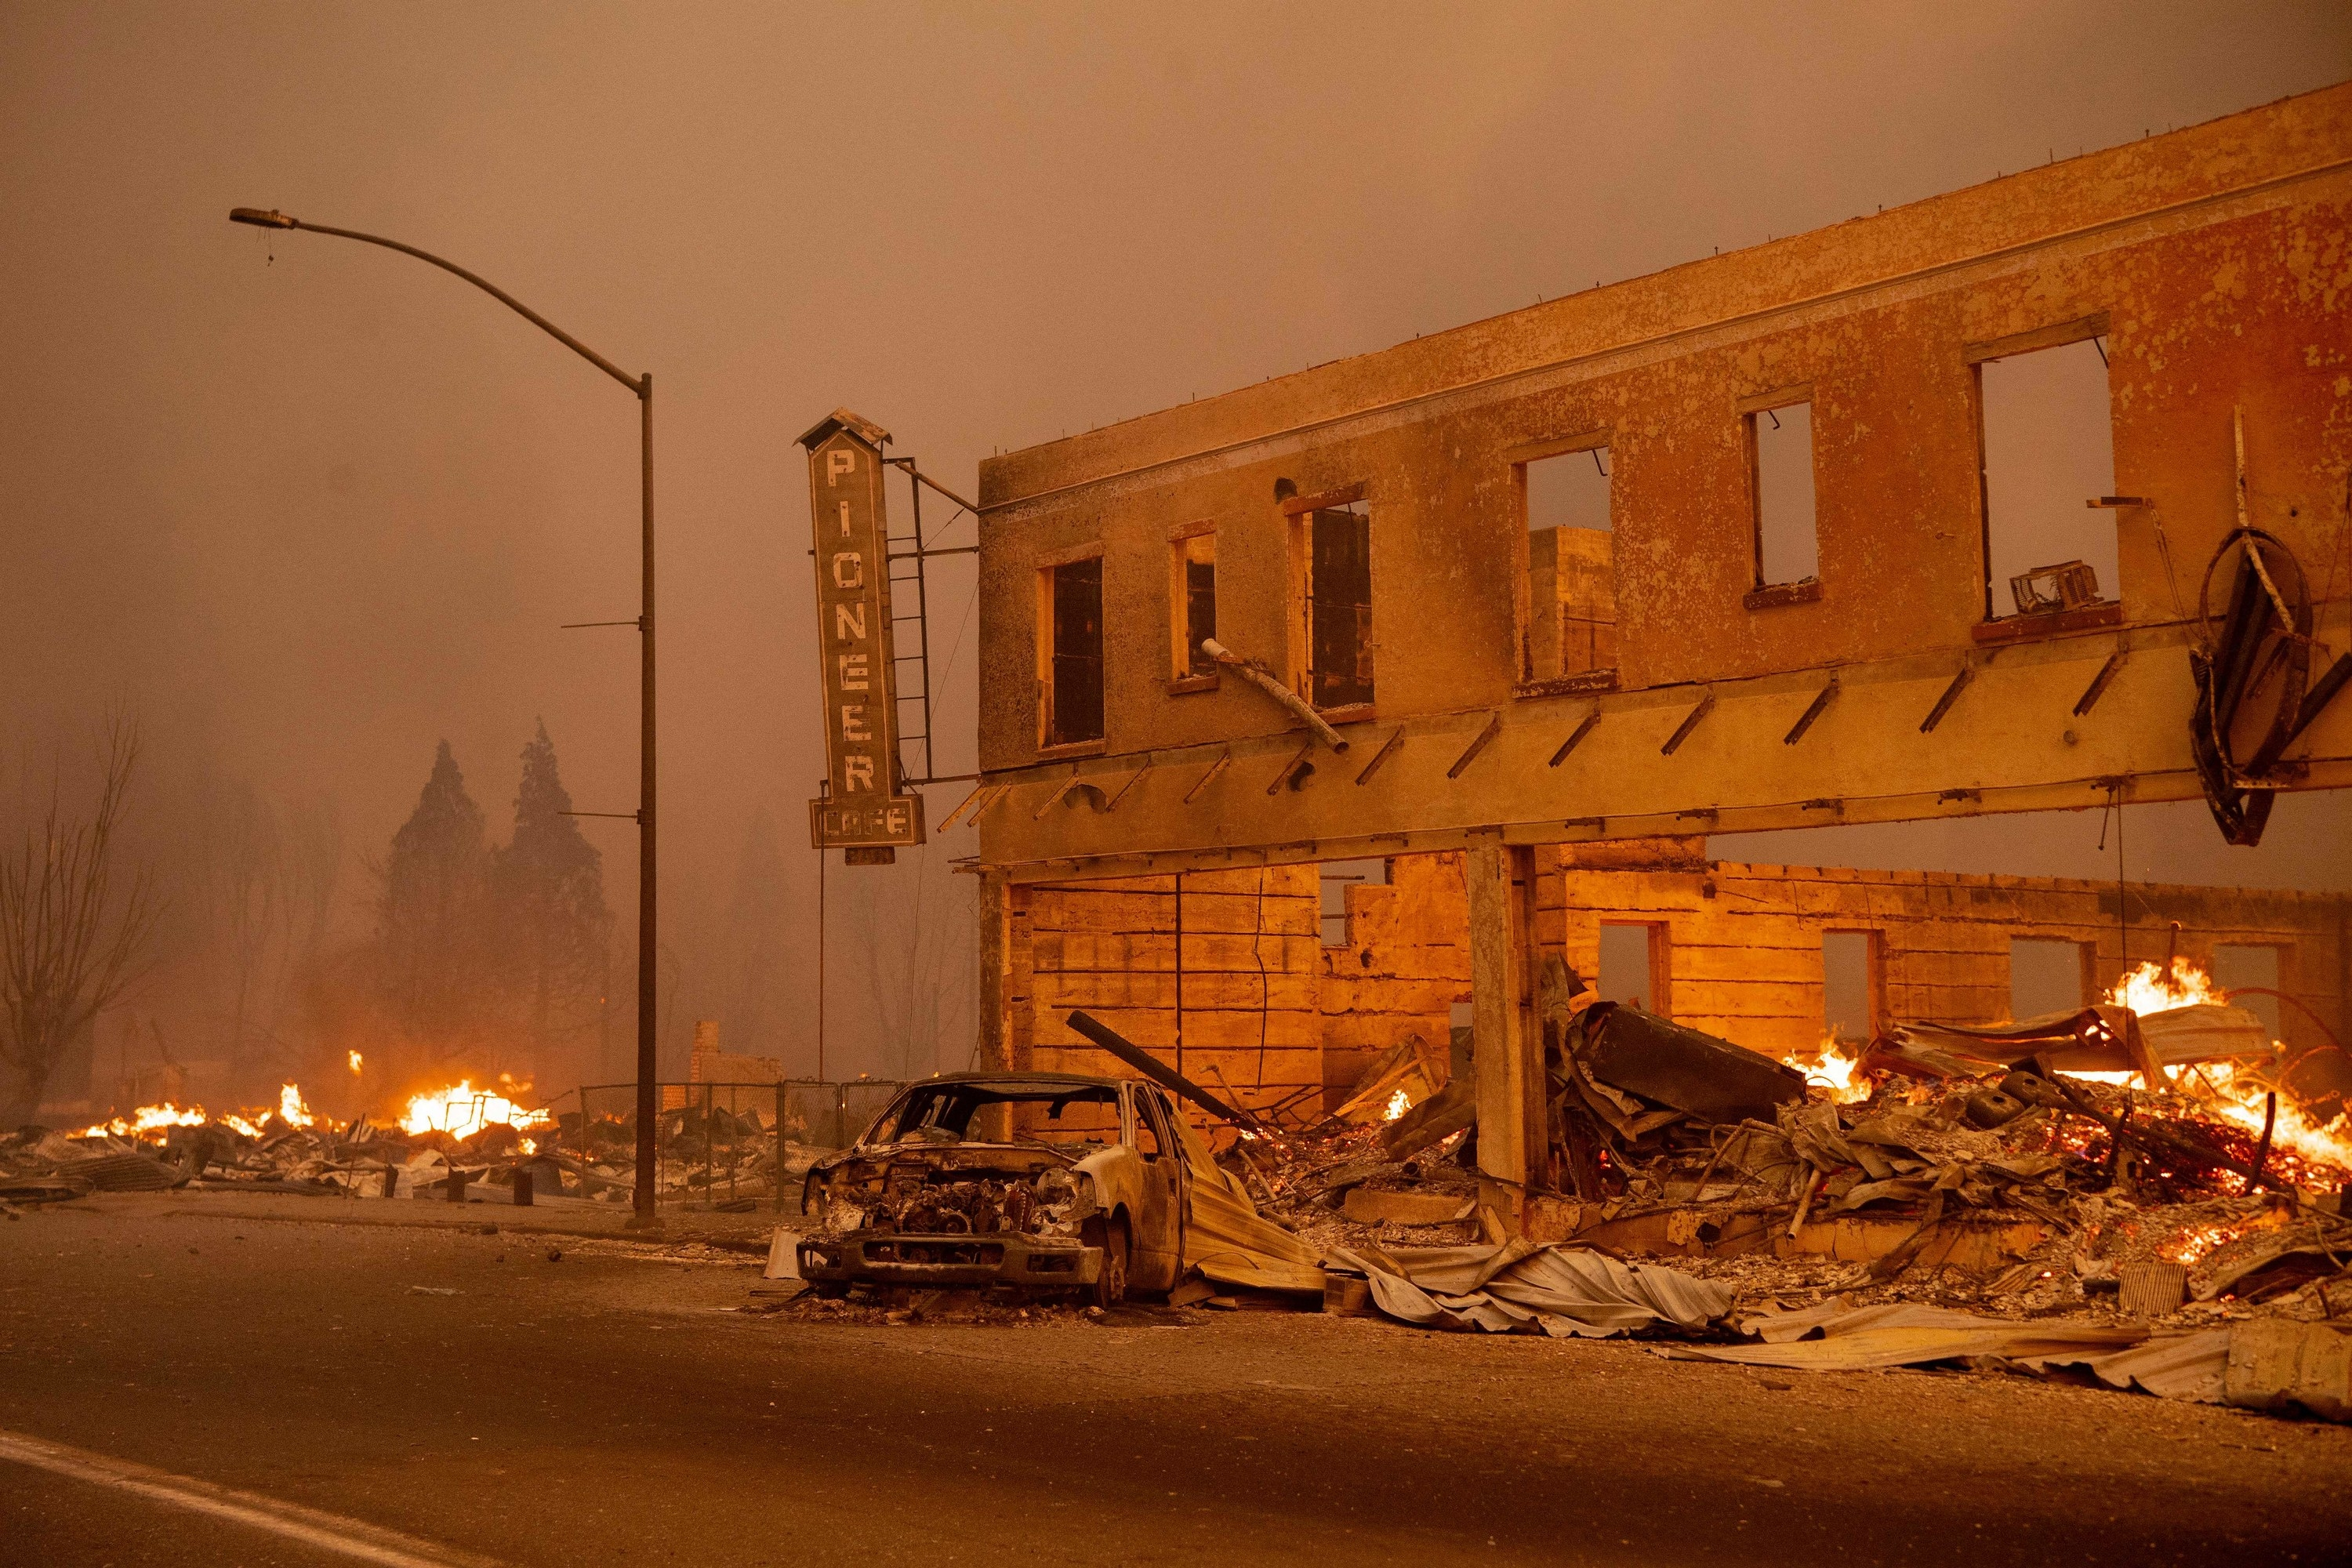 A hollowed-out two-story building is surrounded by flames, rubble, and a destroyed car